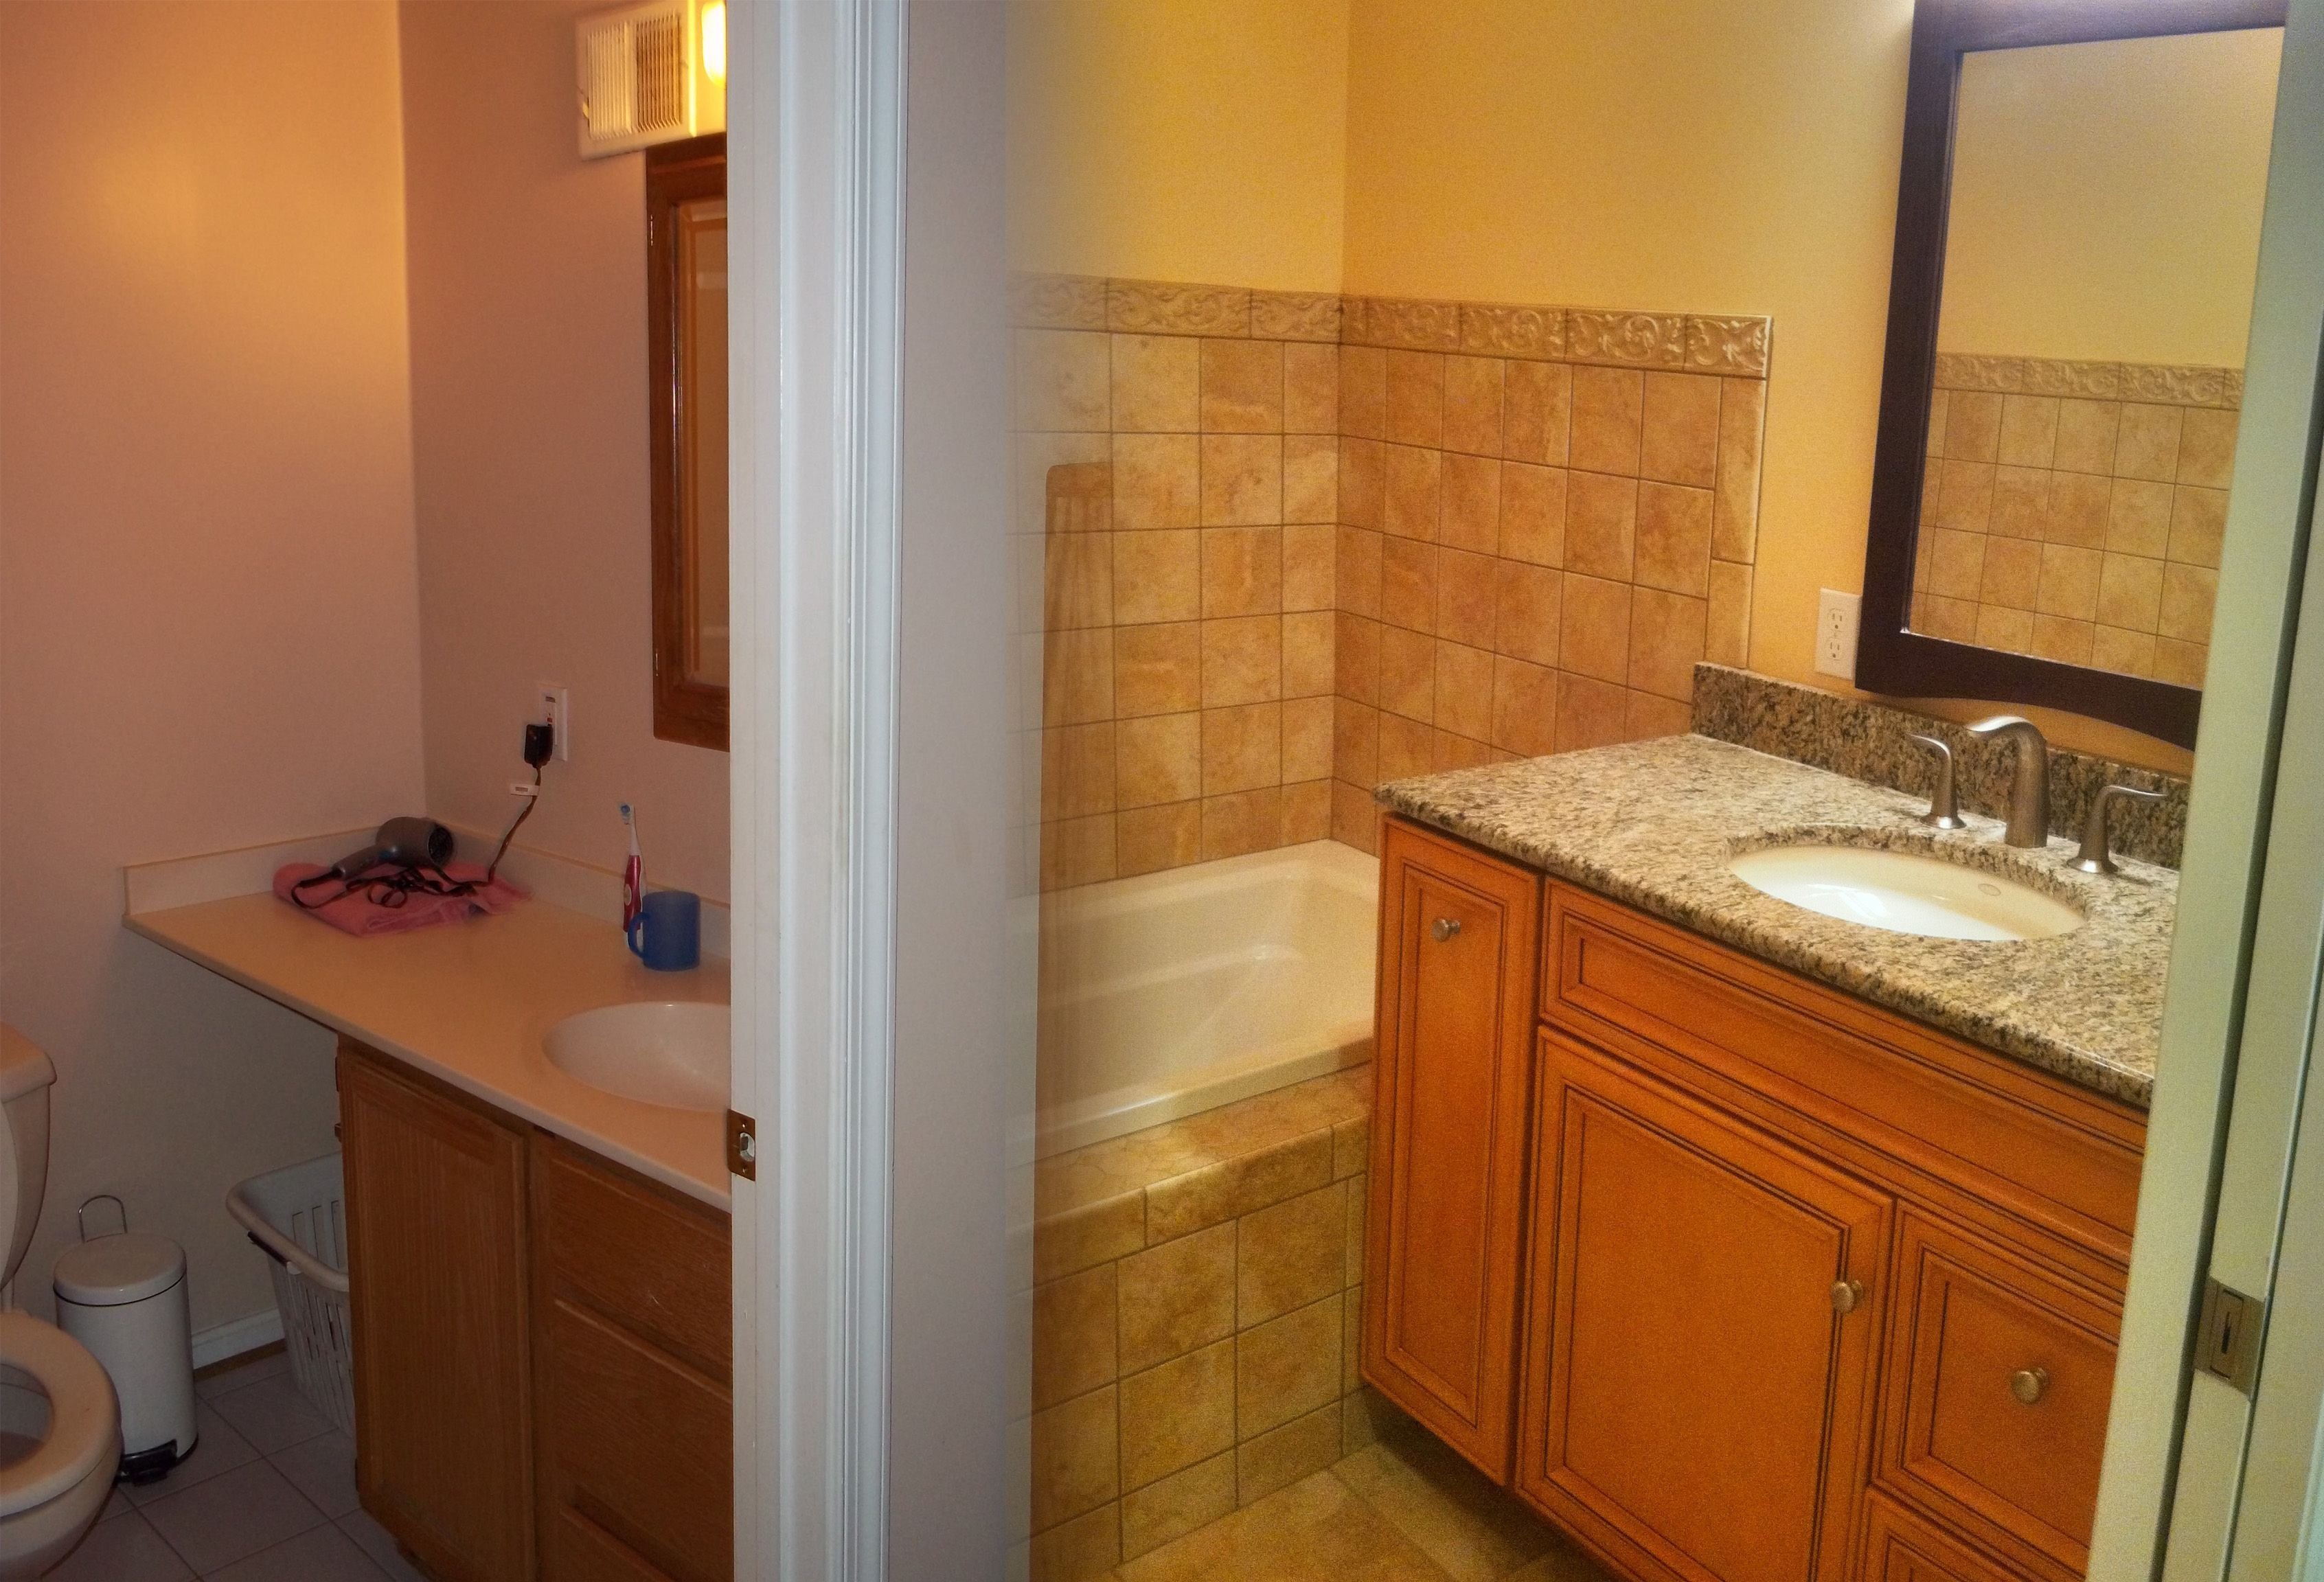 1960s bathroom renovation before and after for Home bathroom remodel